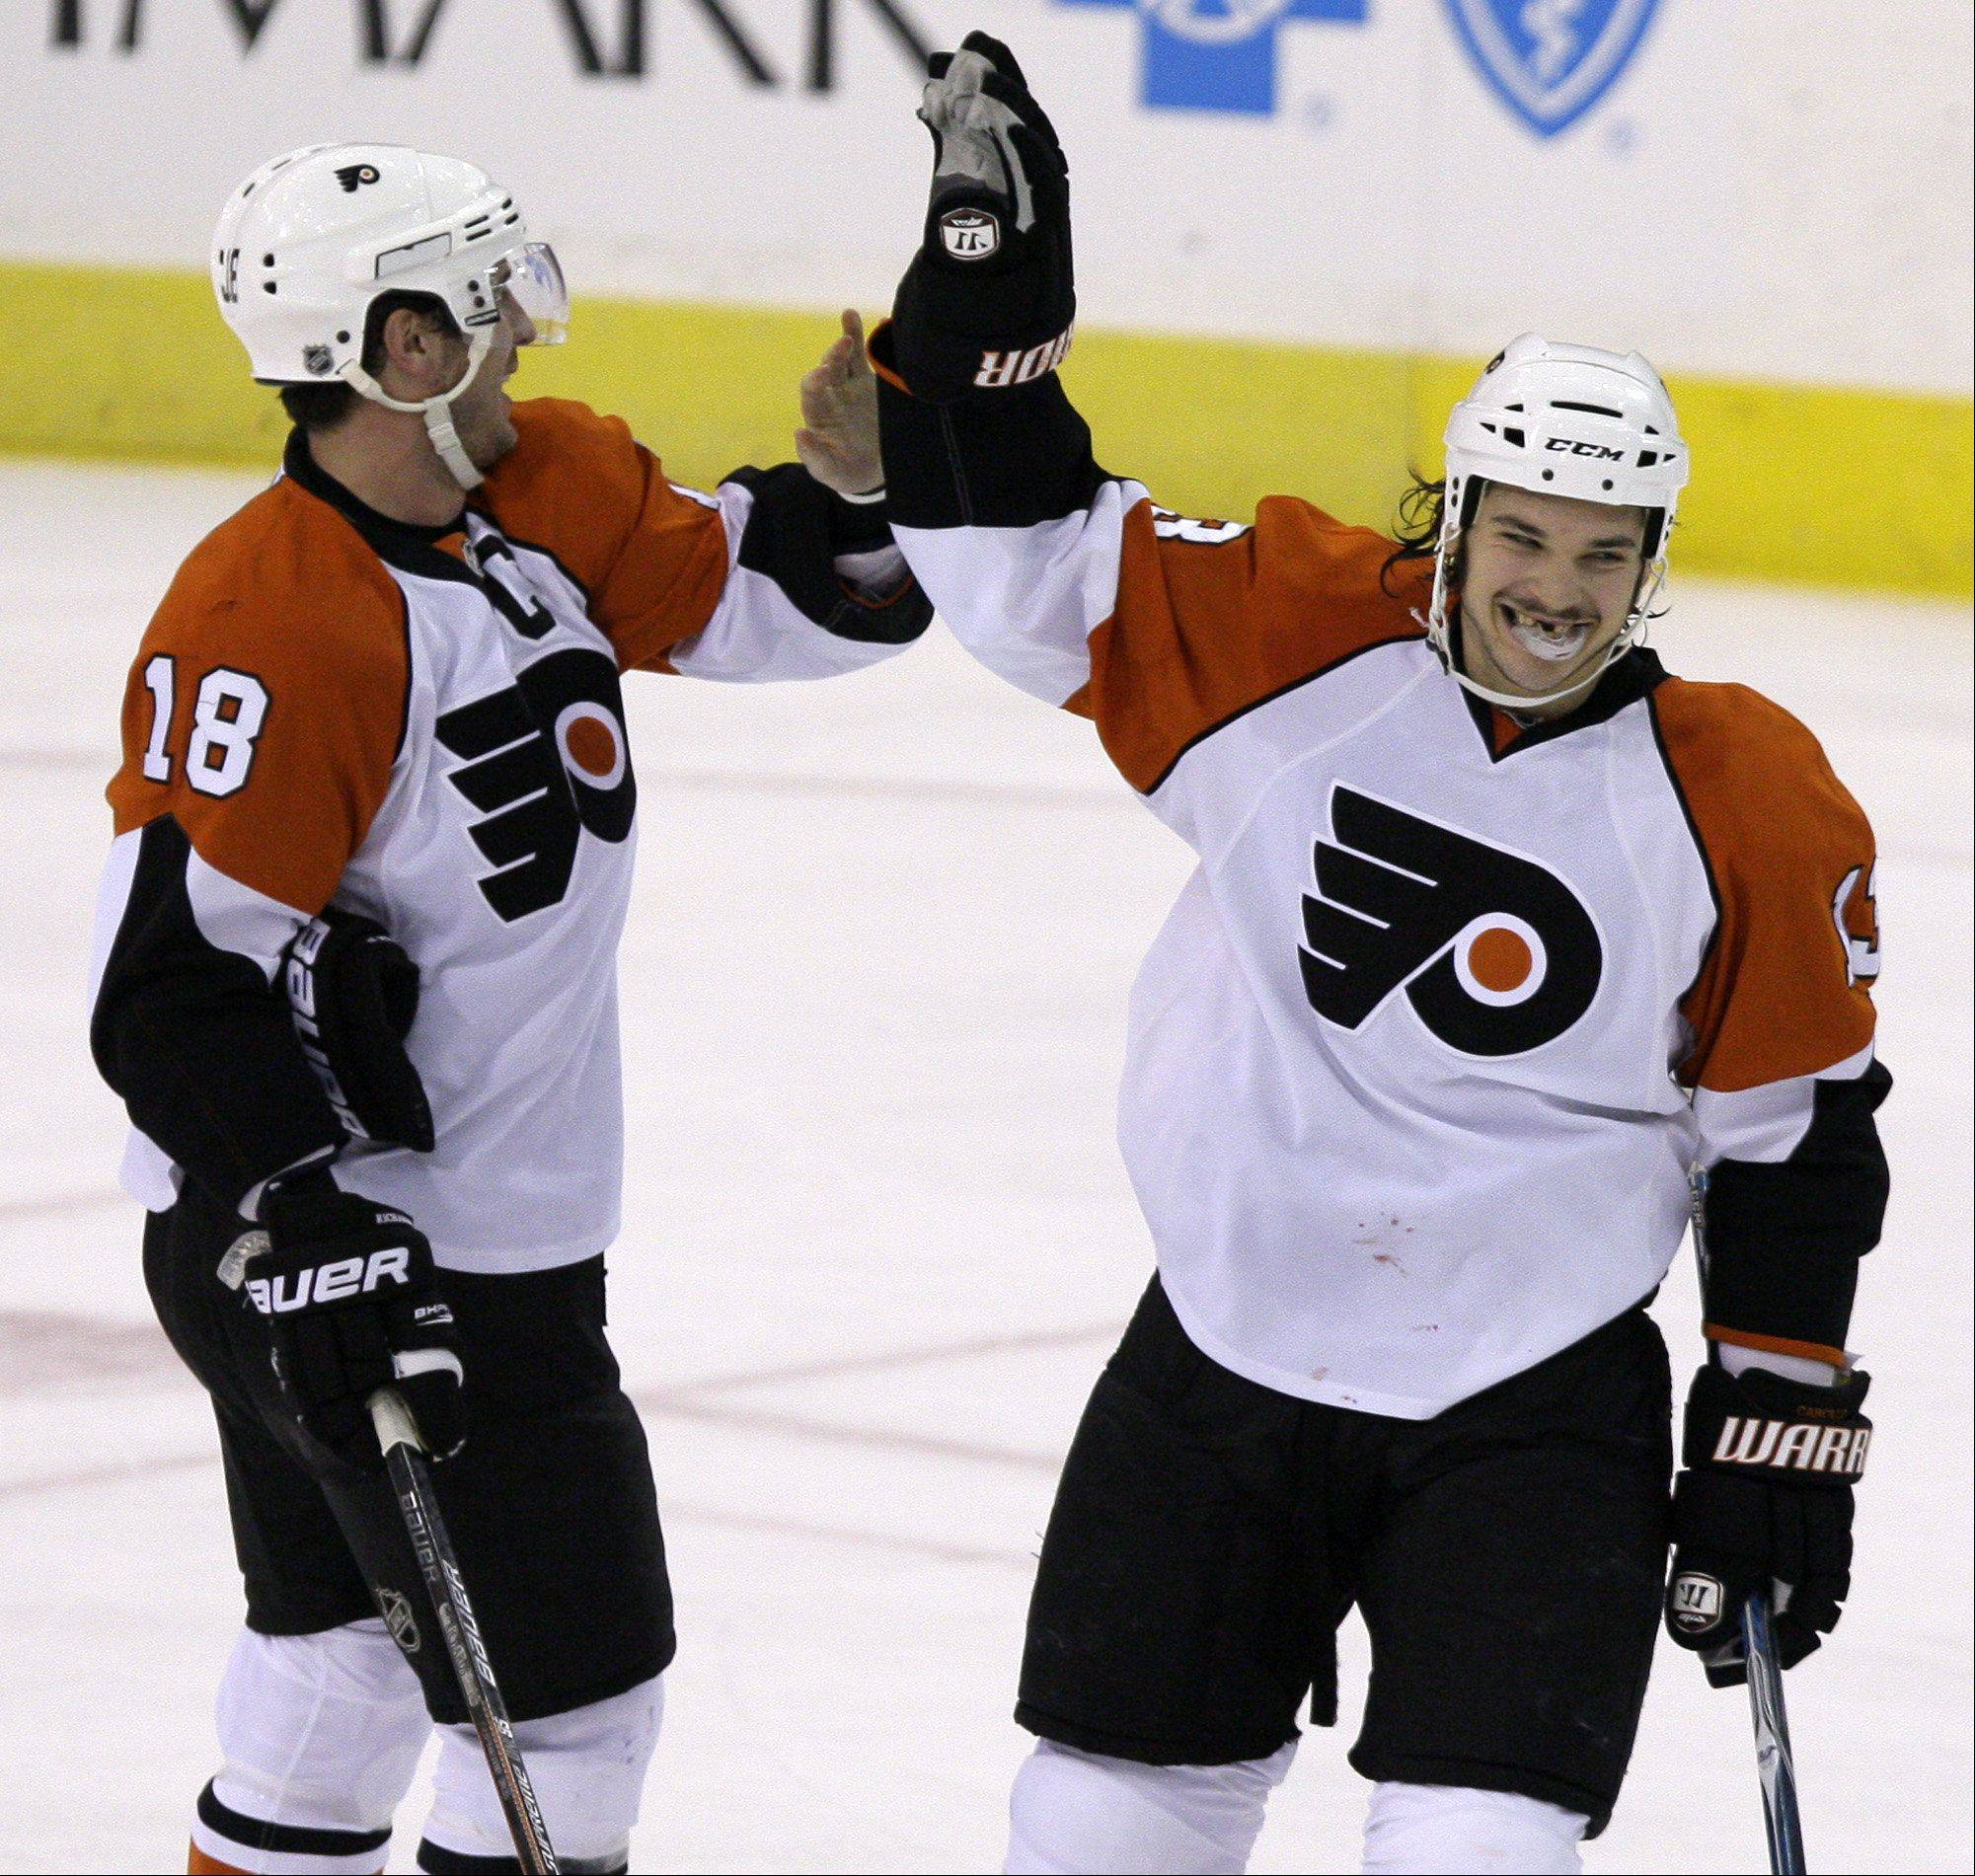 Philadelphia Flyers' Dan Carcillo, right, celebrates with teammate Mike Richards (18) after scoring in the first period against the Pittsburgh Penguins during an NHL hockey game in Pittsburgh on Tuesday, Dec. 15, 2009.